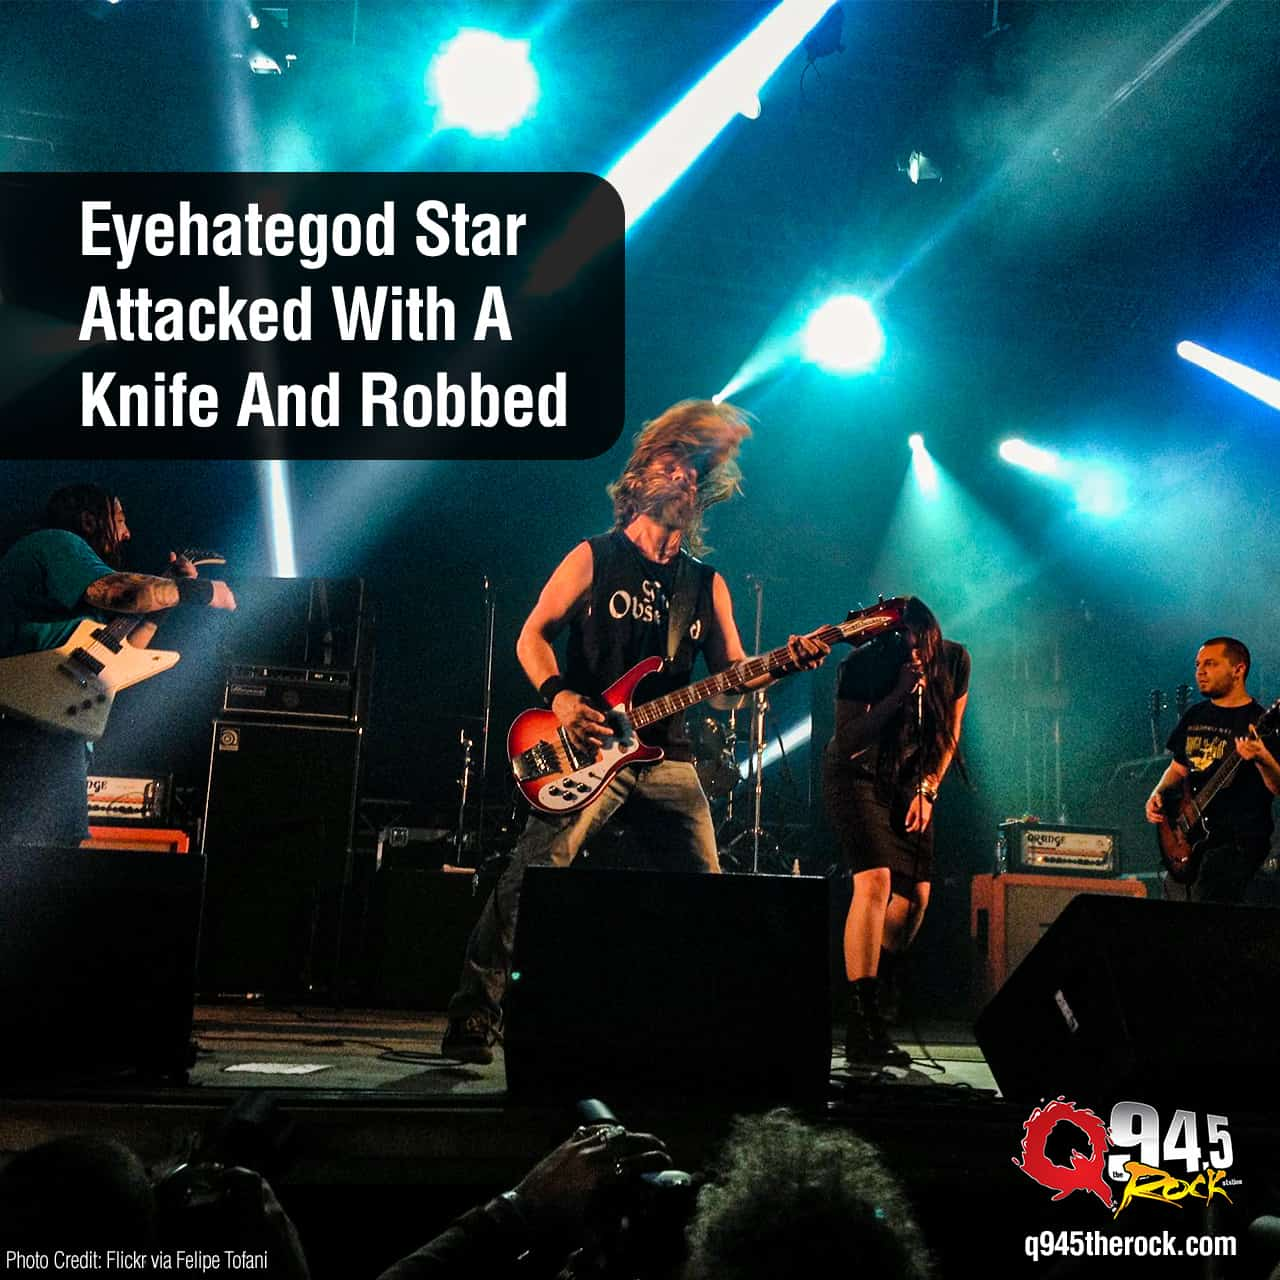 Eyehategod Star Attacked With A Knife And Robbed